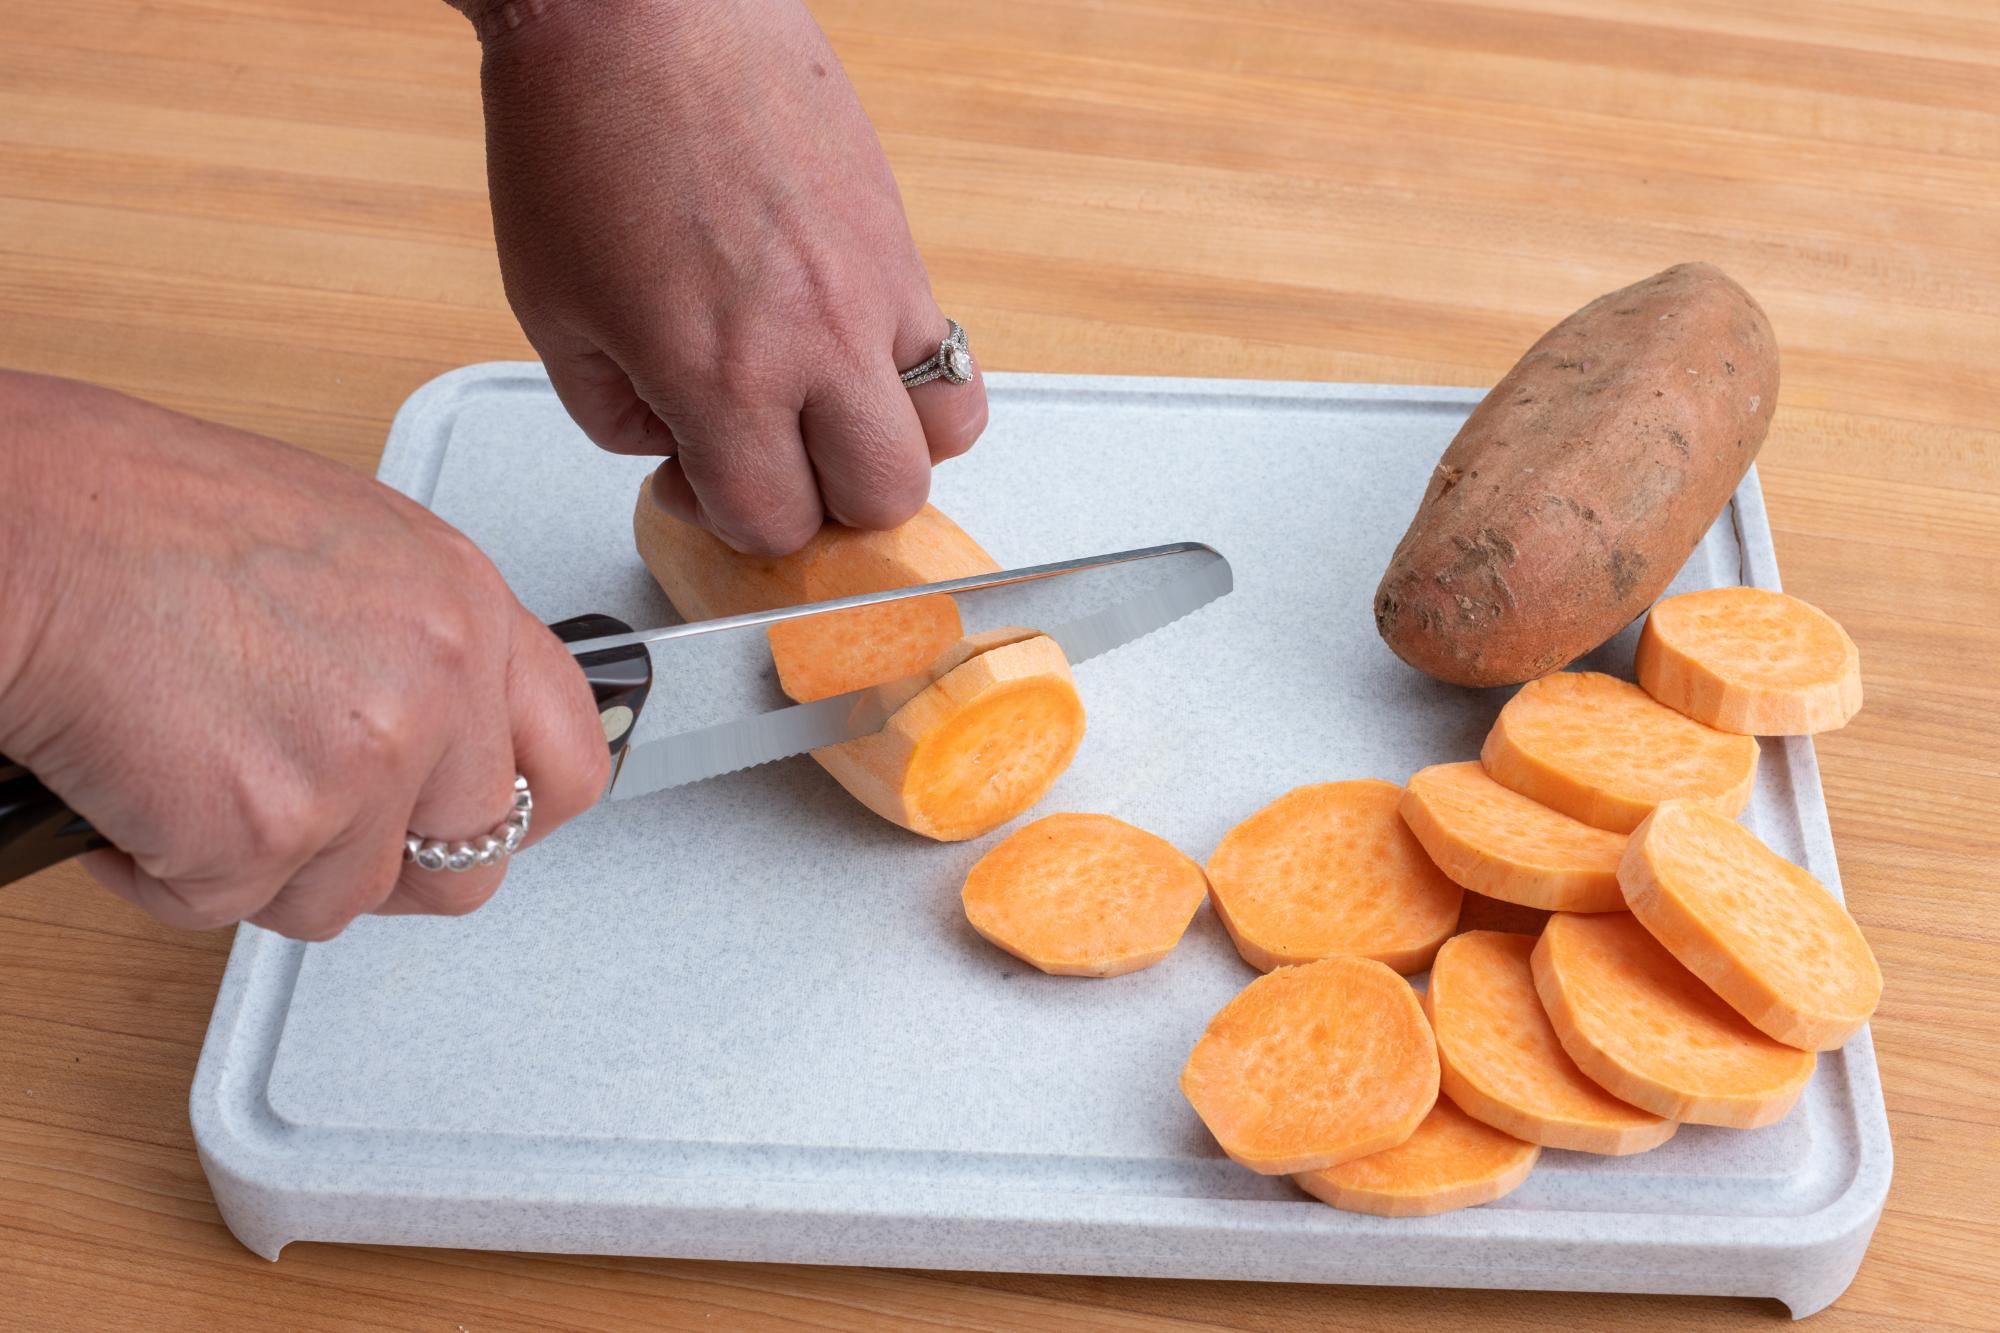 Making slices of sweet potato with the Hardy Slicer.